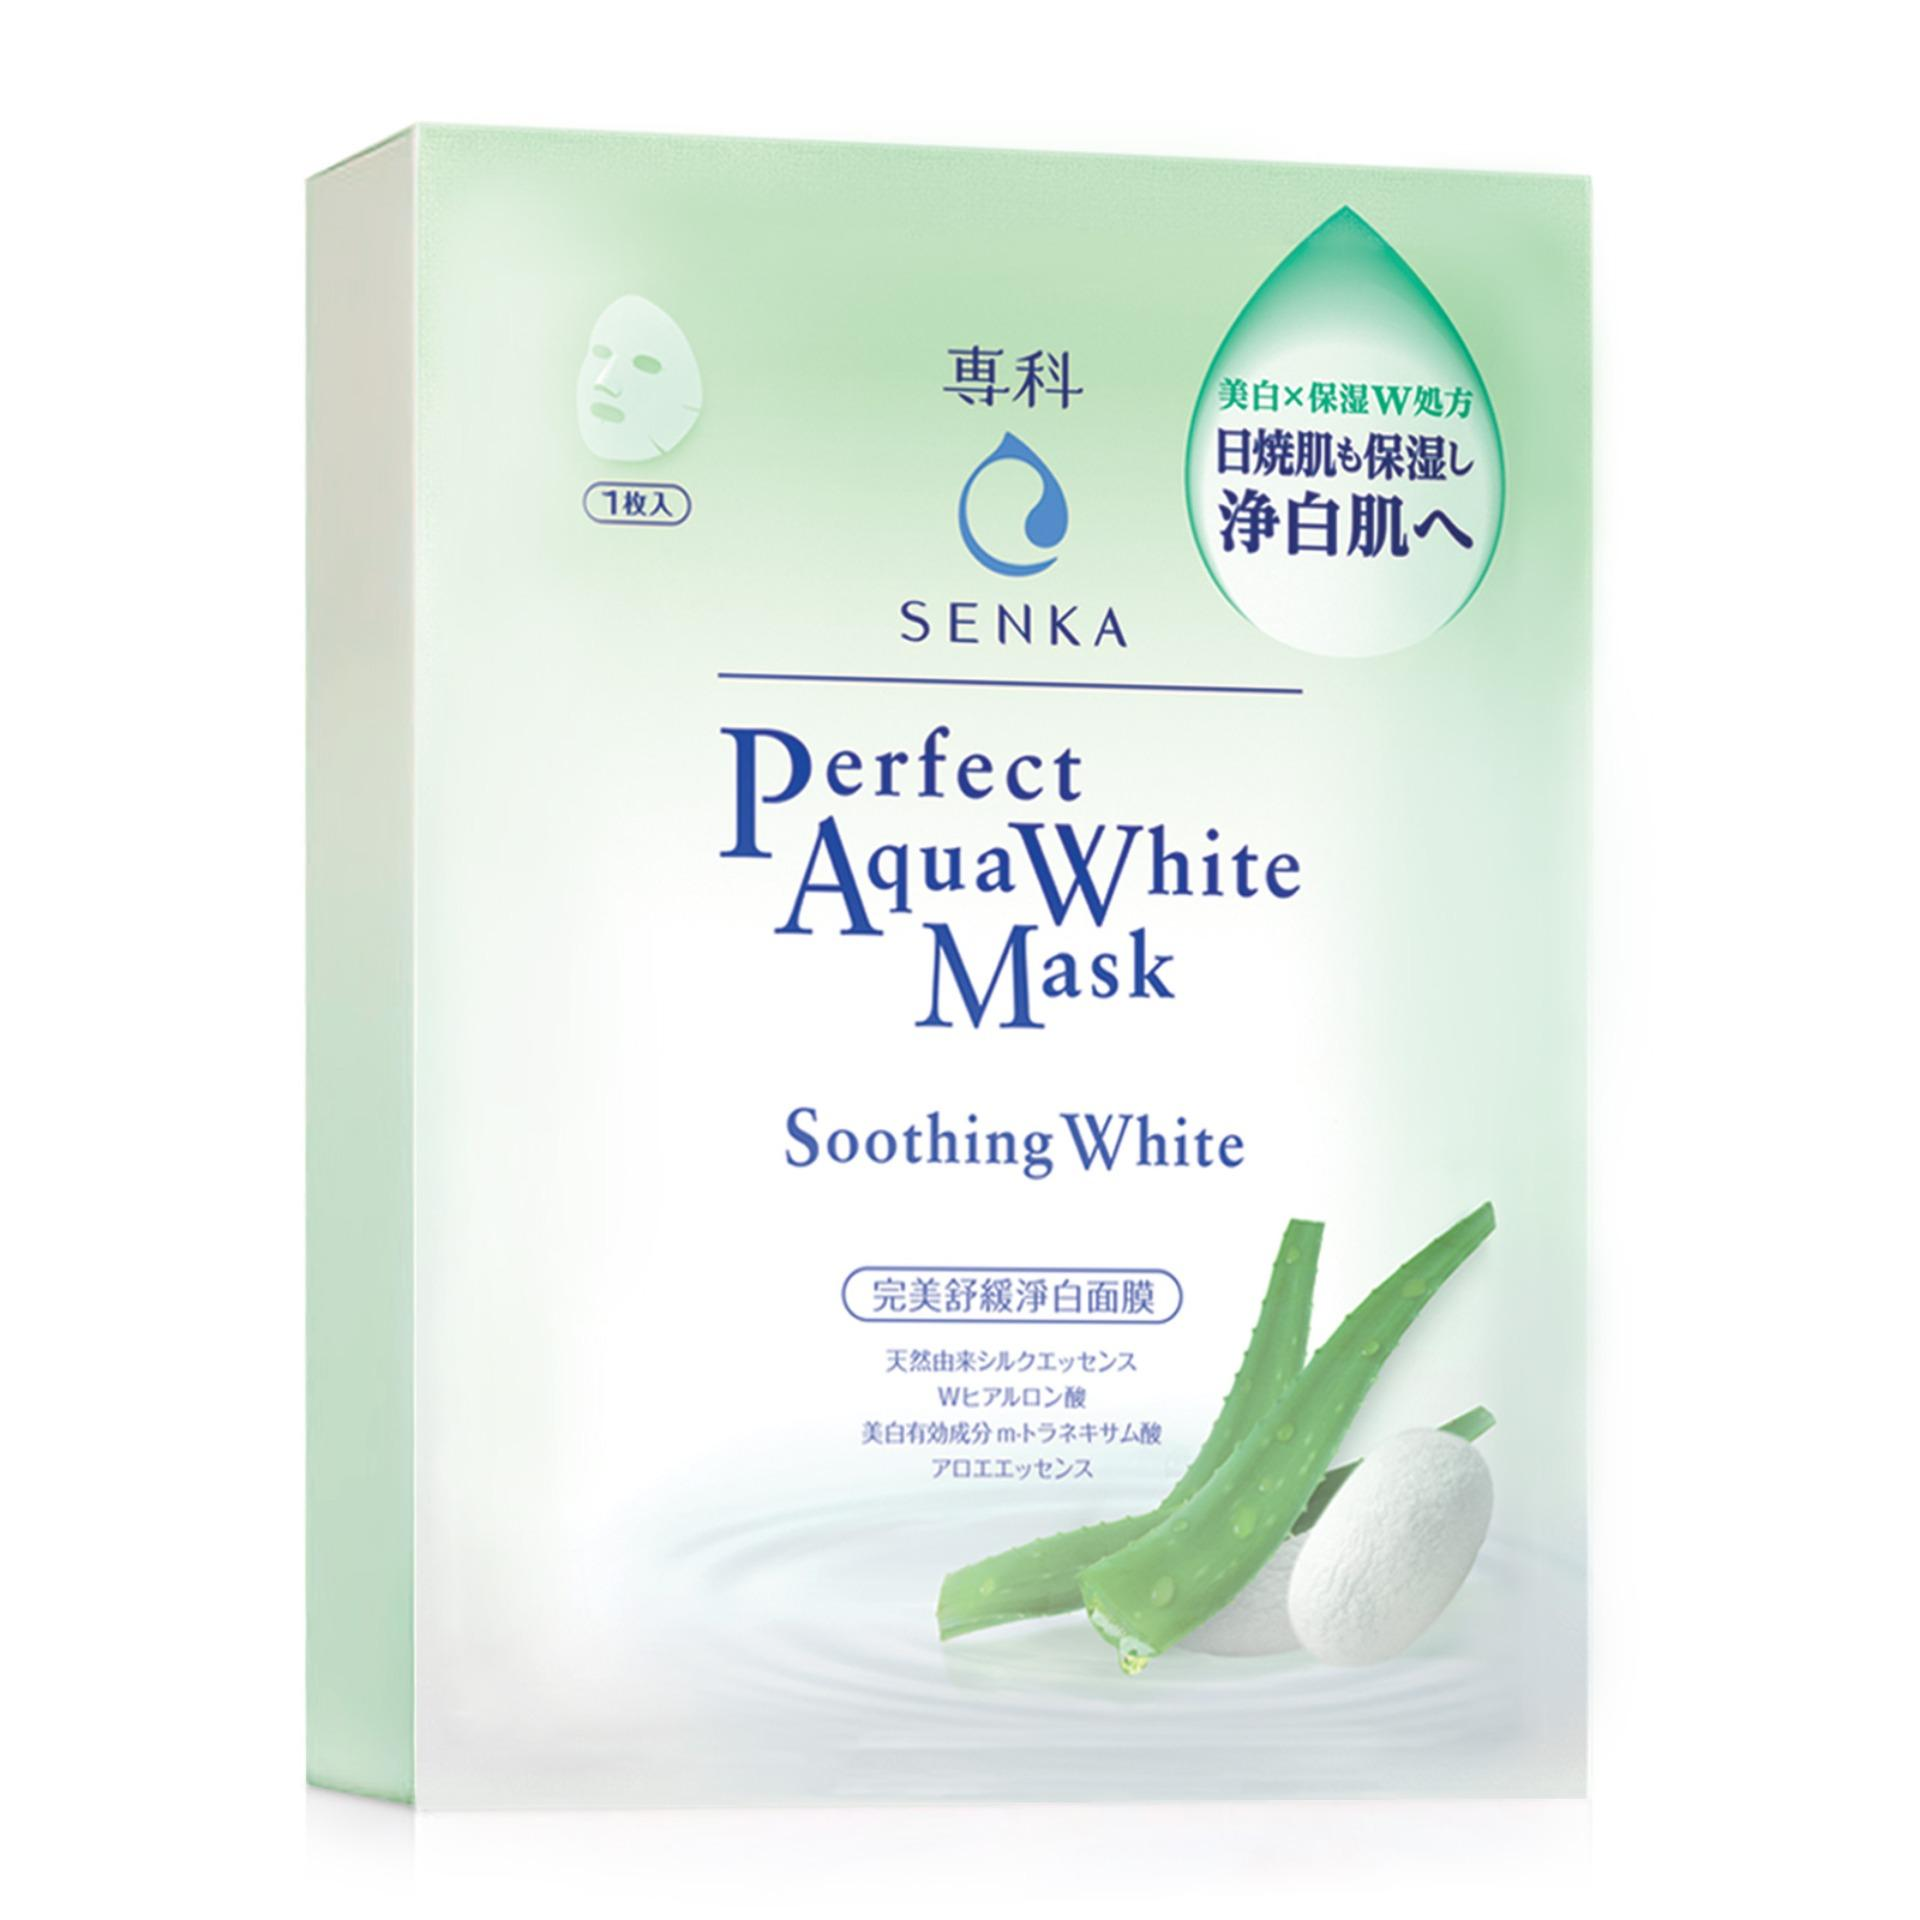 Best Reviews Of Senka Aqua White Mask Soothing White 7P Box